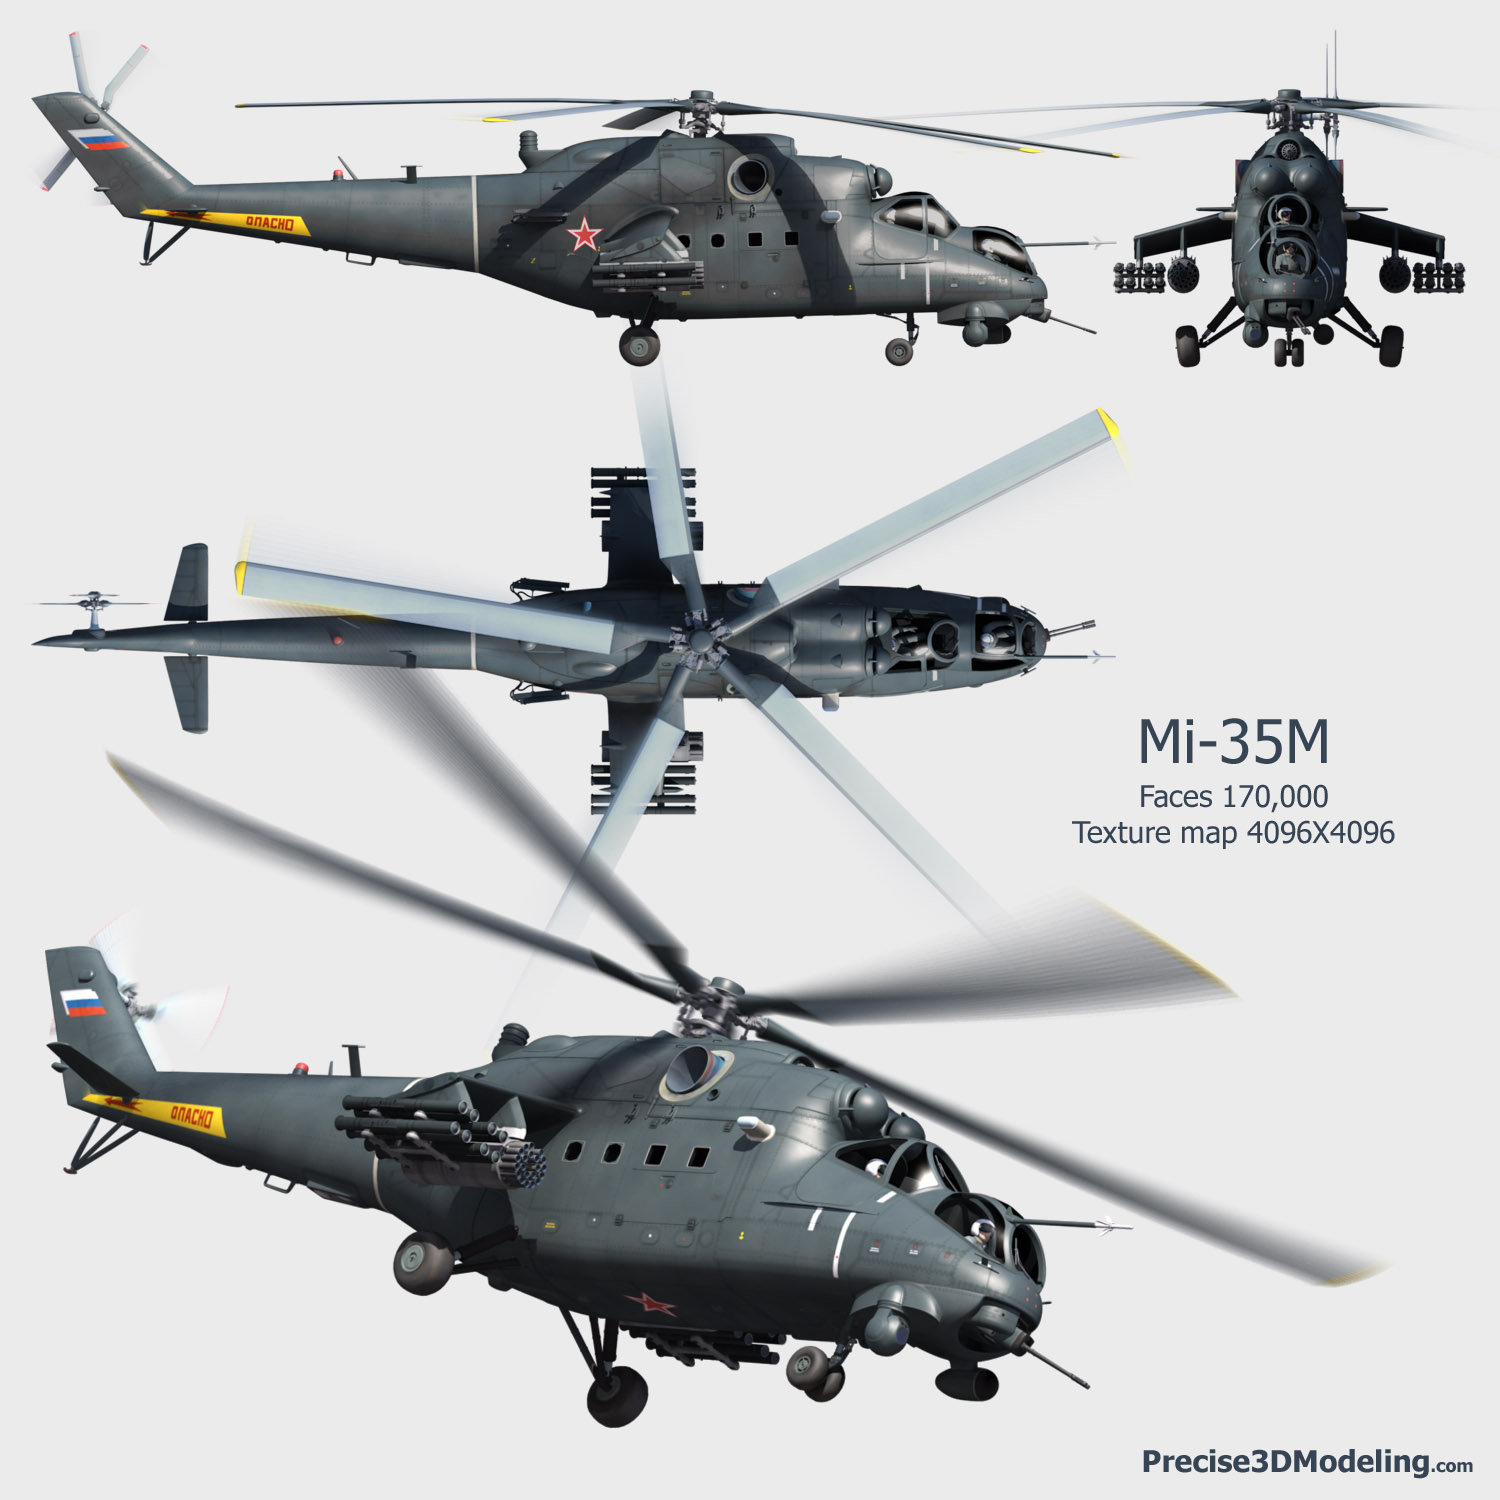 mi35m helicopter with Rusia  Enzo Suministrar Armas Irak on sthash CGe0EMhq further Mil mi 24 additionally Rusia  enzo Suministrar Armas Irak together with 102131 in addition World Helikopter Siluman Generasi.